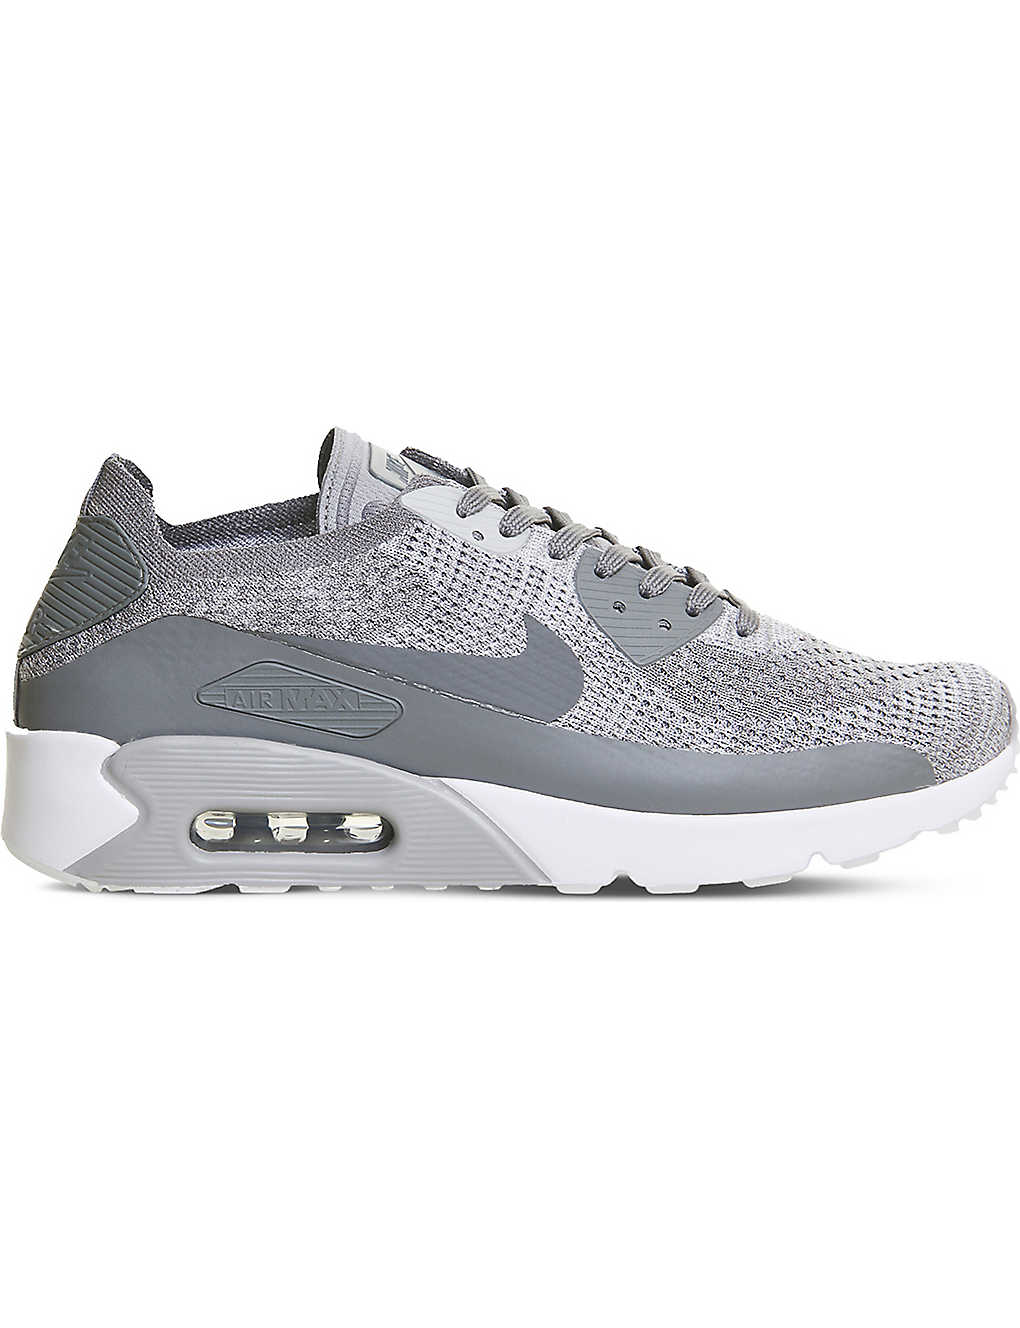 5146c98ec4b97 NIKE - Air Max 90 Ultra 2.0 Flyknit trainers | Selfridges.com